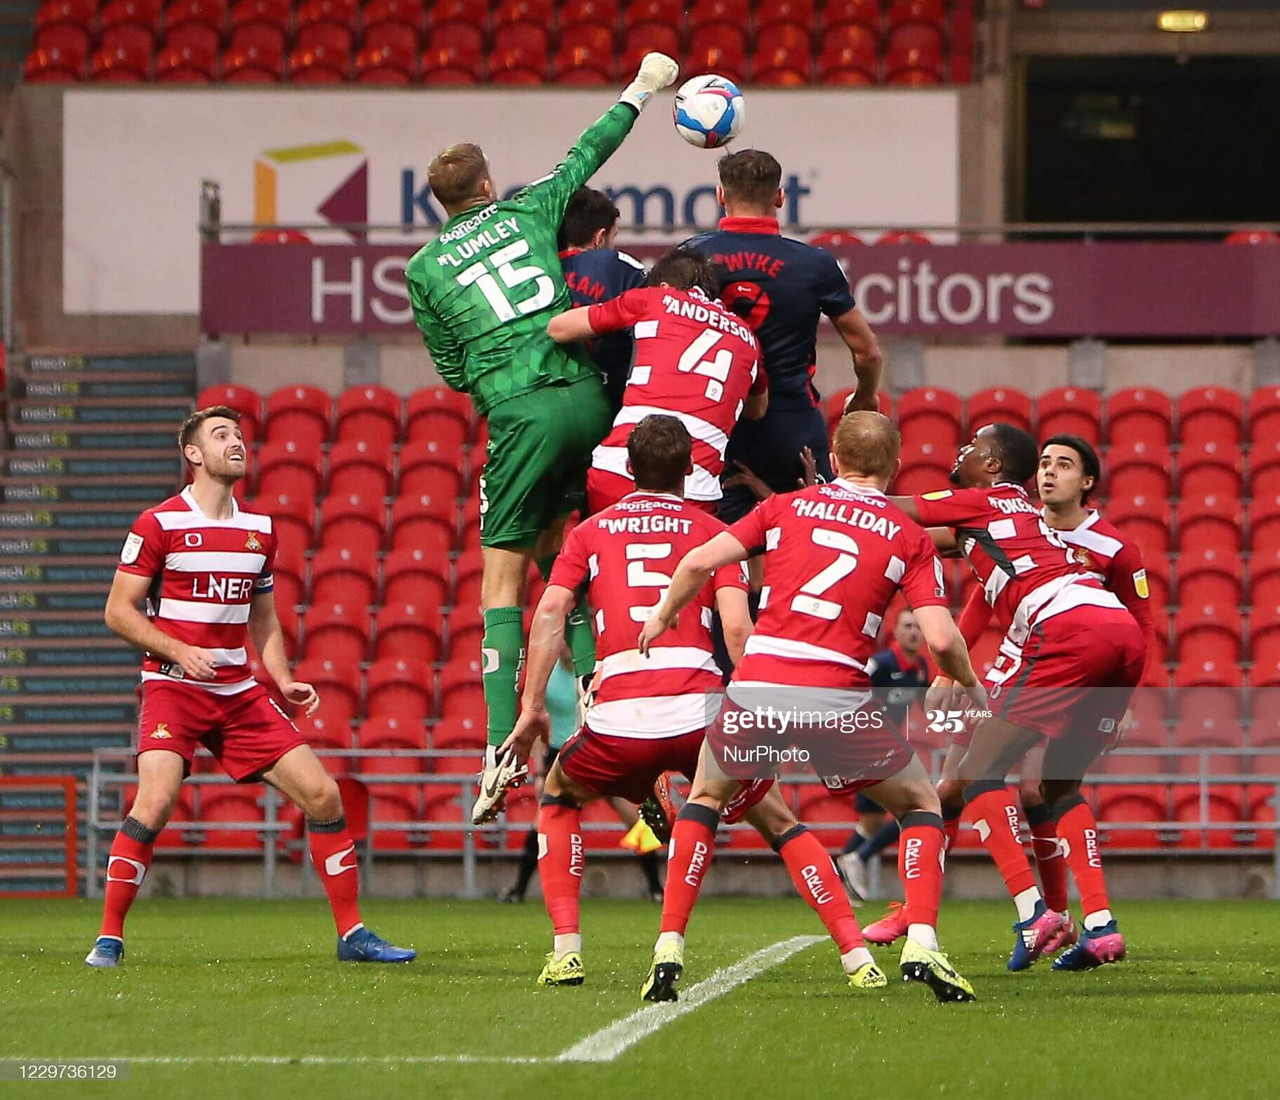 Joe Lumley misses a chance to punch clear as Charlie Wyke heads wide in the first half during the Sky Bet League 1 match between Doncaster Rovers and Sunderland at the Keepmoat Stadium, Doncaster on Saturday 21st November 2020. (Photo by Michael Driver/MI News/NurPhoto via Getty Images)